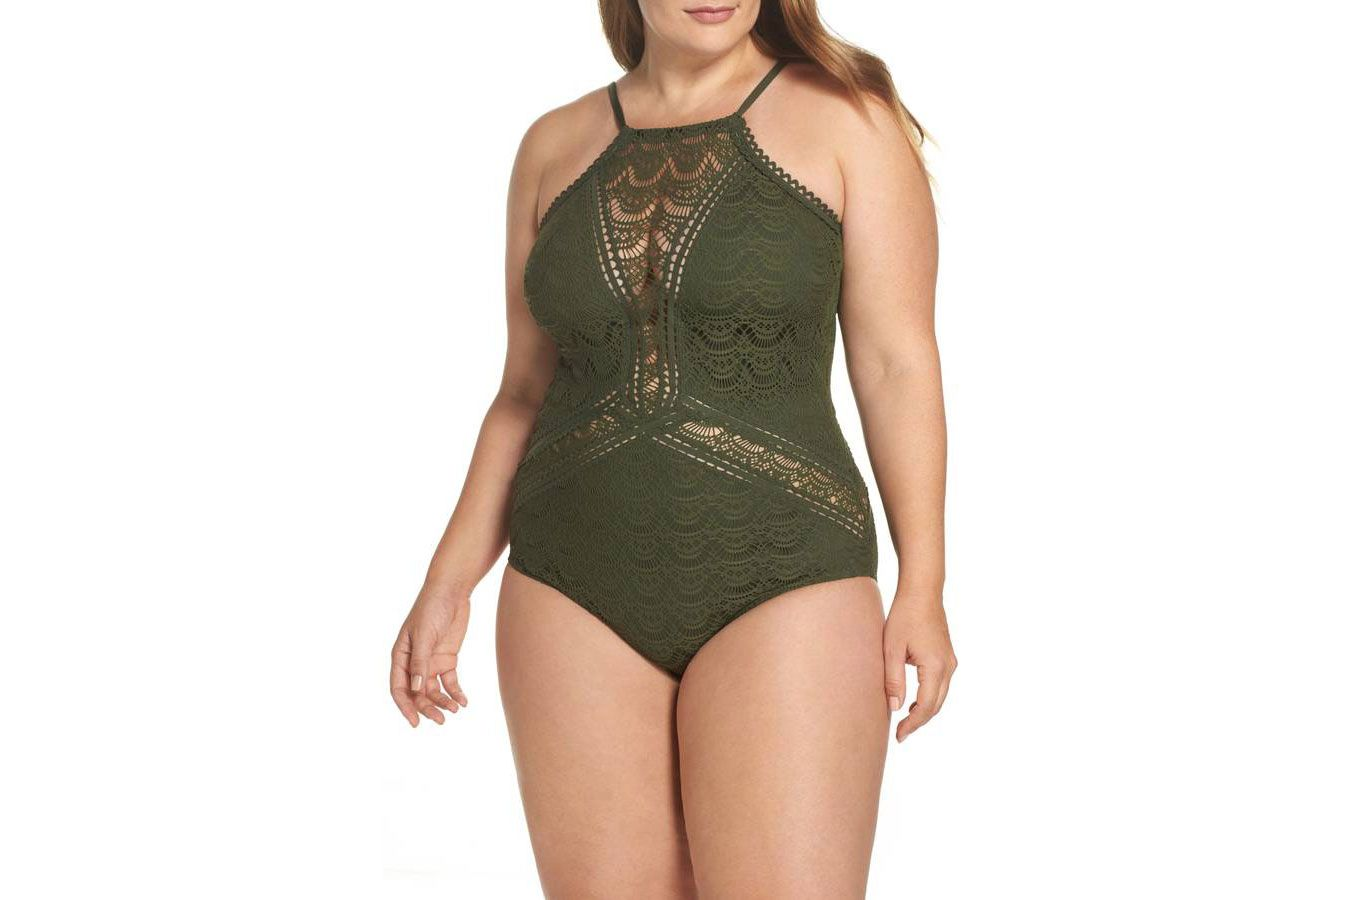 eeaadc29bd 15 Best One-Piece Swimsuits for Women 2018